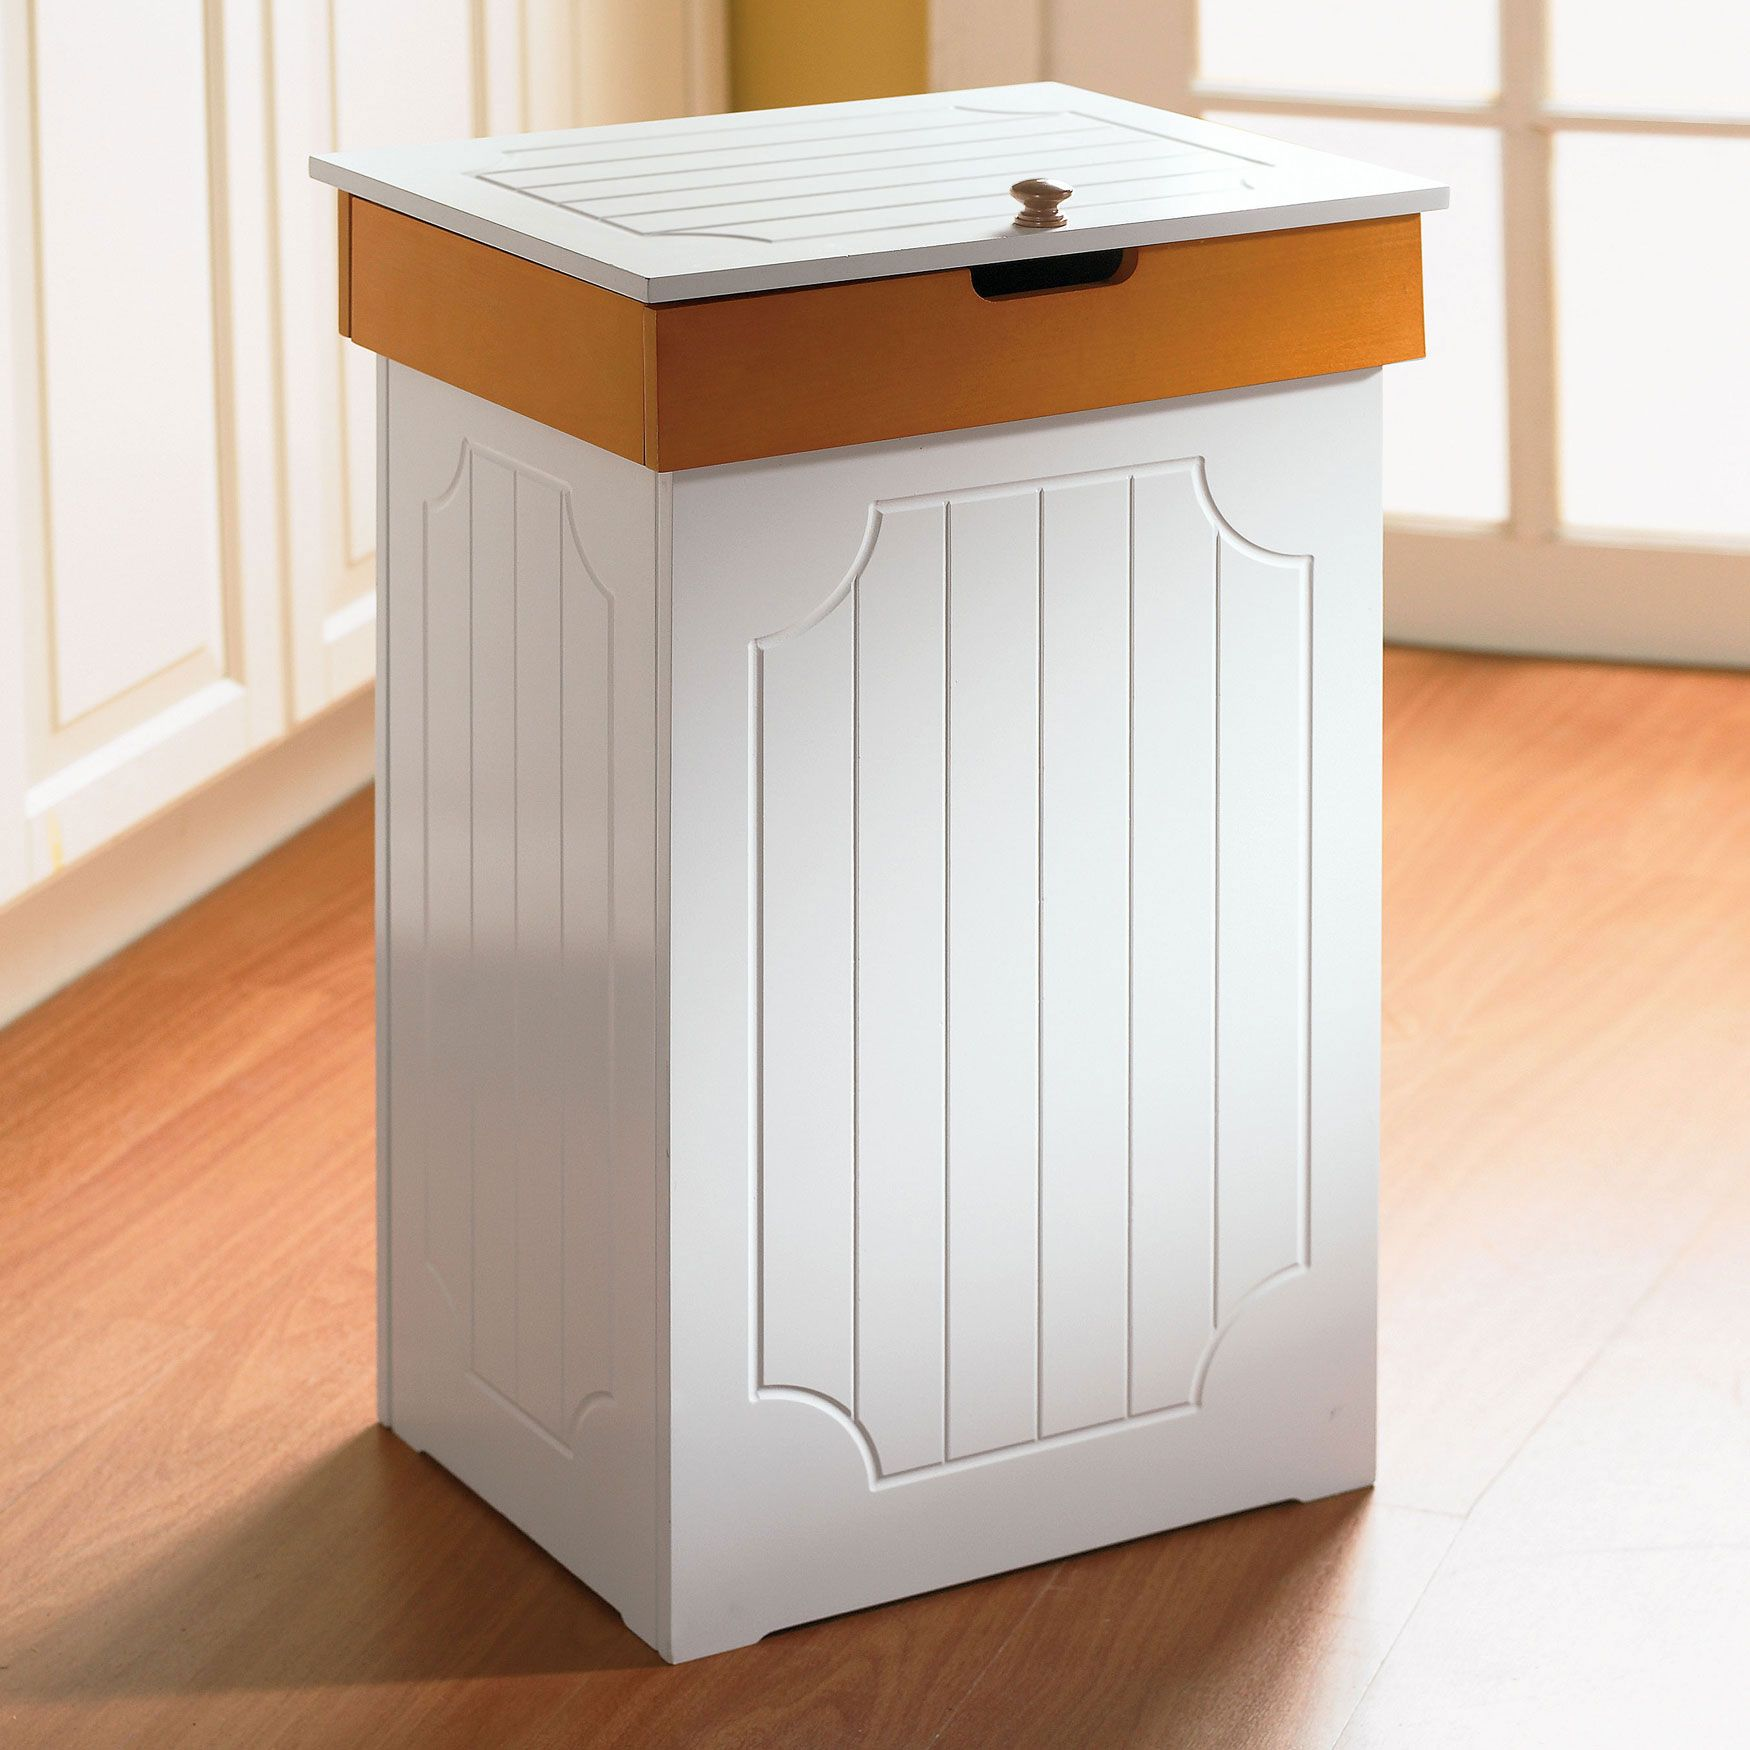 Kitchen Trash on Brylane Country Kitchen Wood Trash Bin Wood Trash Bin For  The Home